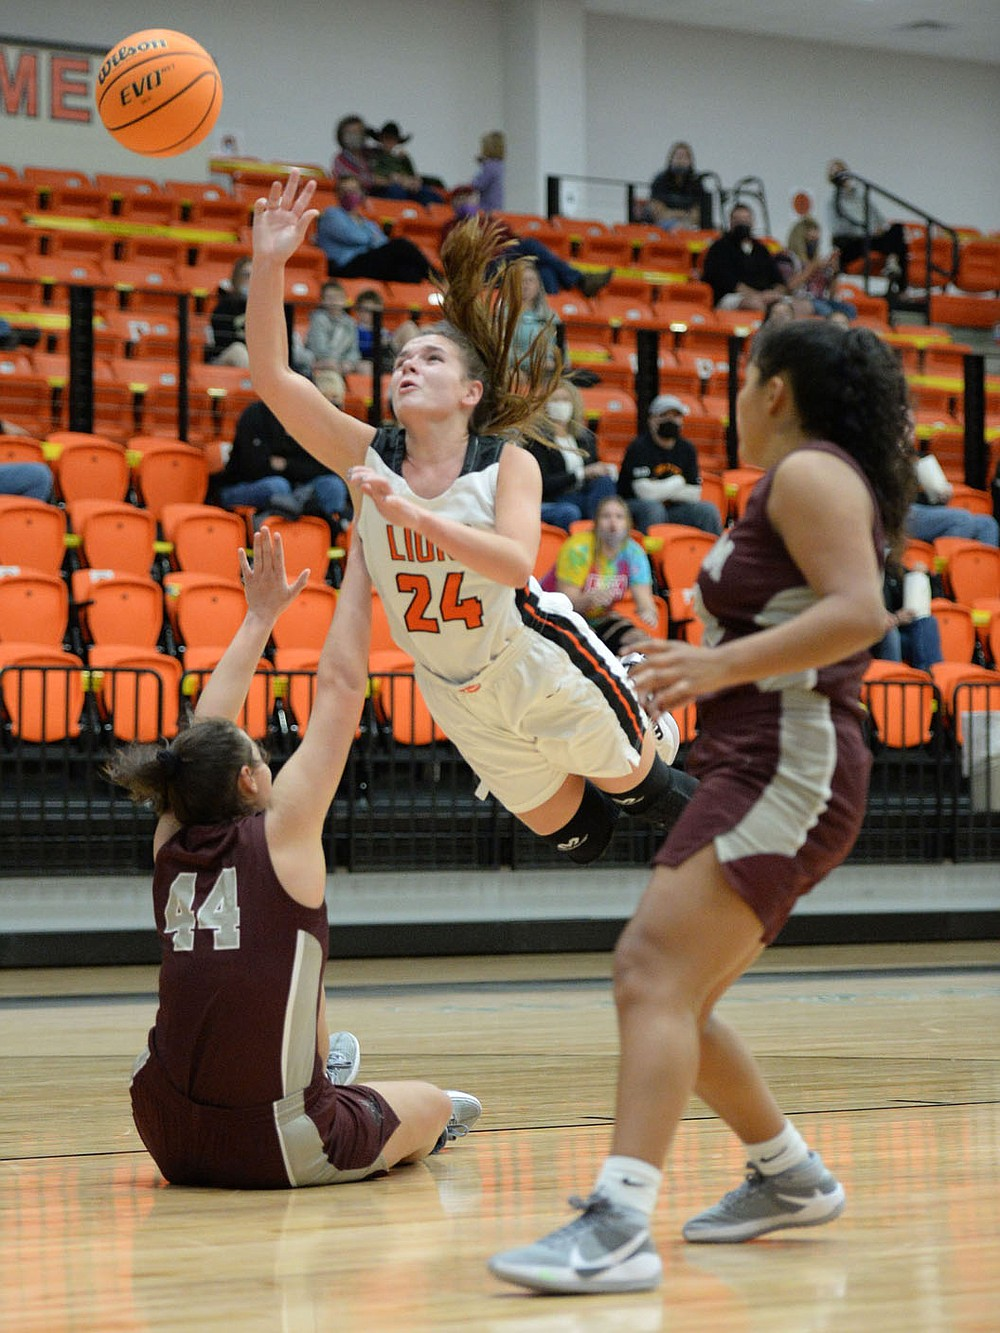 Andy Shupe/NWA Democrat-Gazette Gravette's Reese Hamilton (24) leaps Tuesday to score over Siloam Springs' Mia Hevener (44) during the first half of play in Gravette.